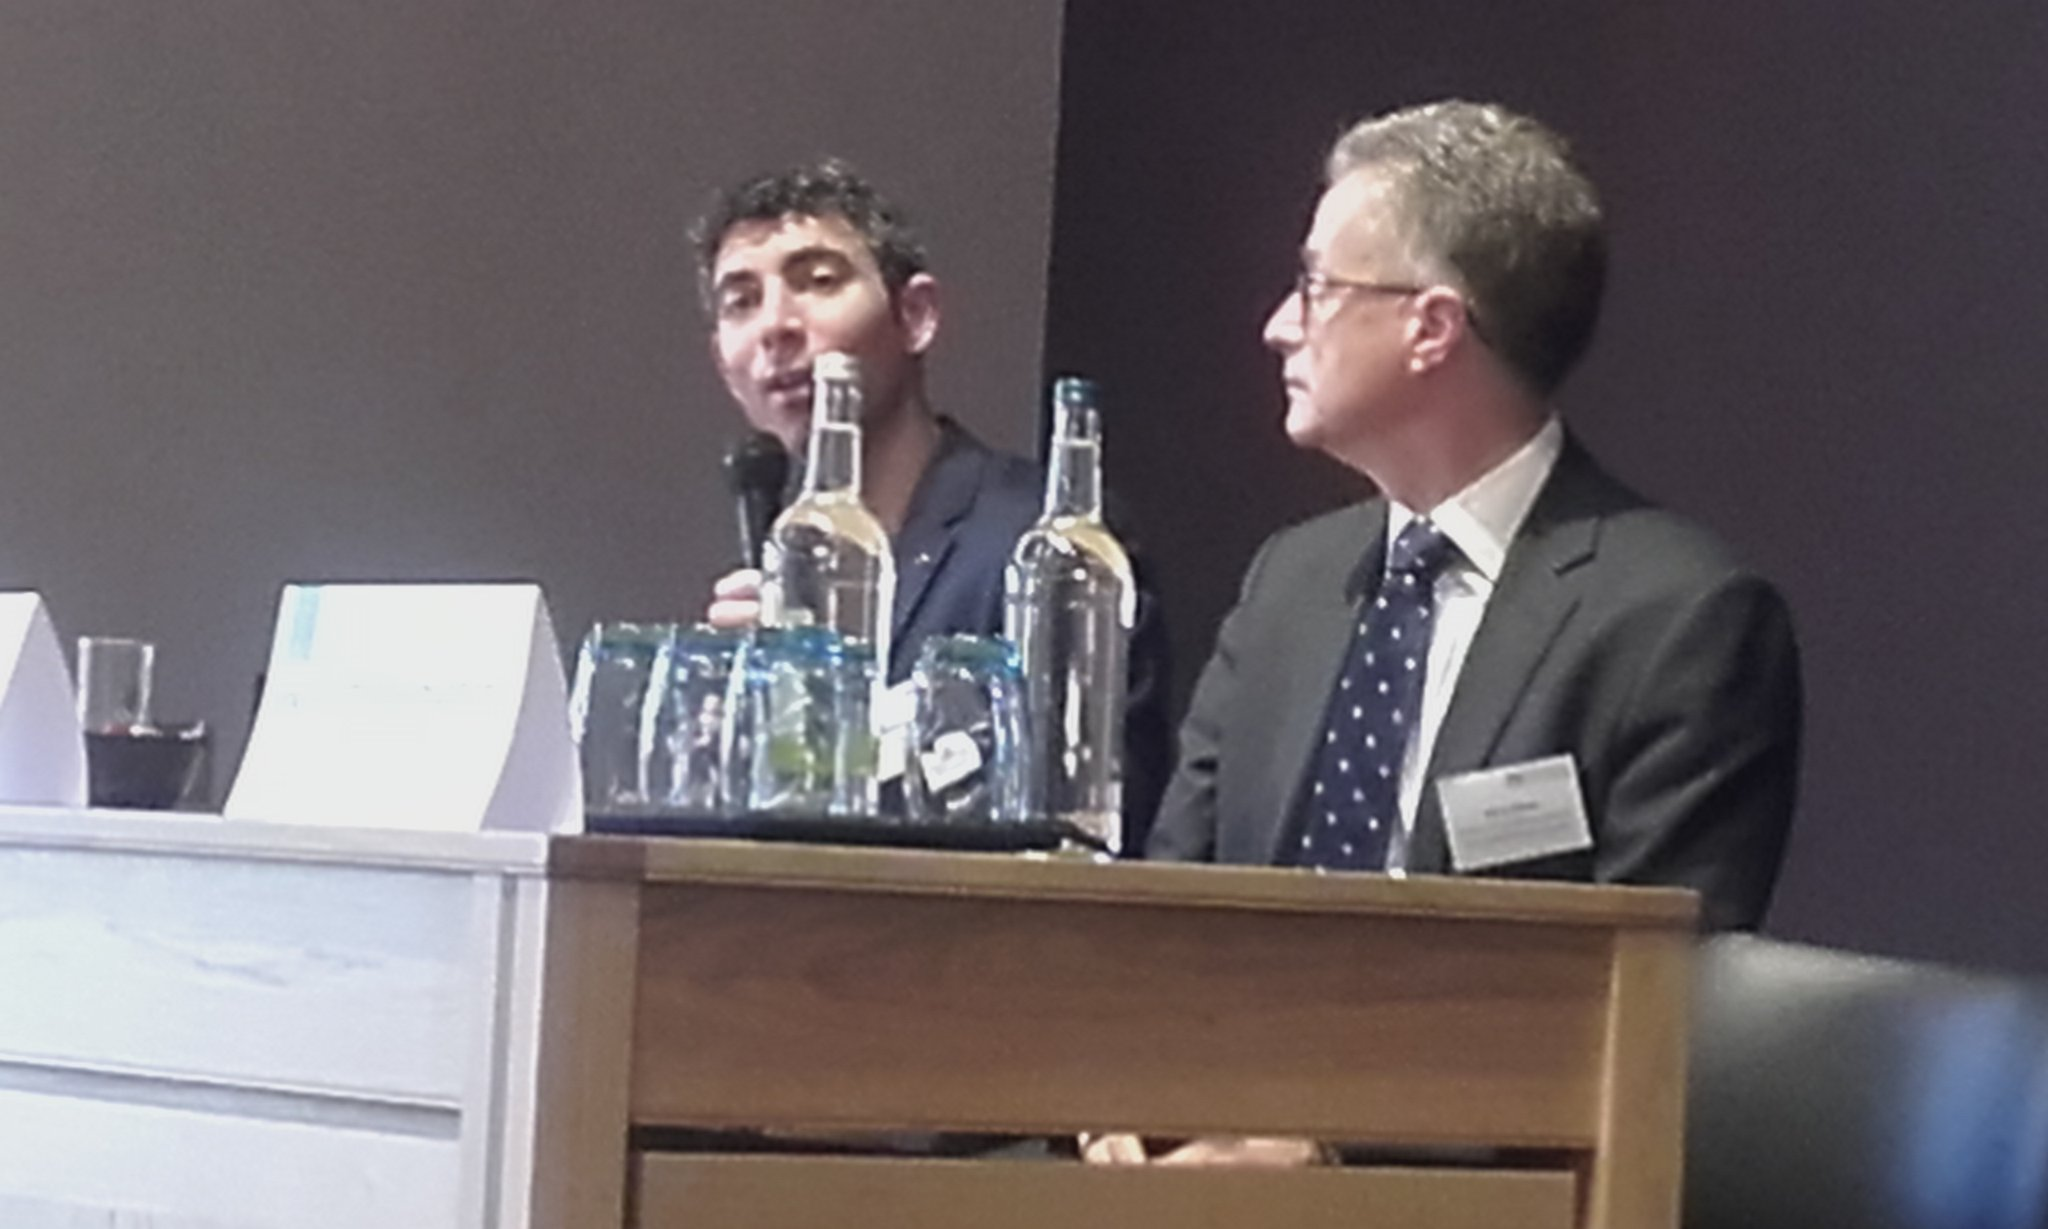 Good robust questions & discussion - lessons from cancer & cardiology from Nitzan Rosenfeld & Perry Elliott @PHGFoundation #LSS2016 https://t.co/YtP2JPBkFi